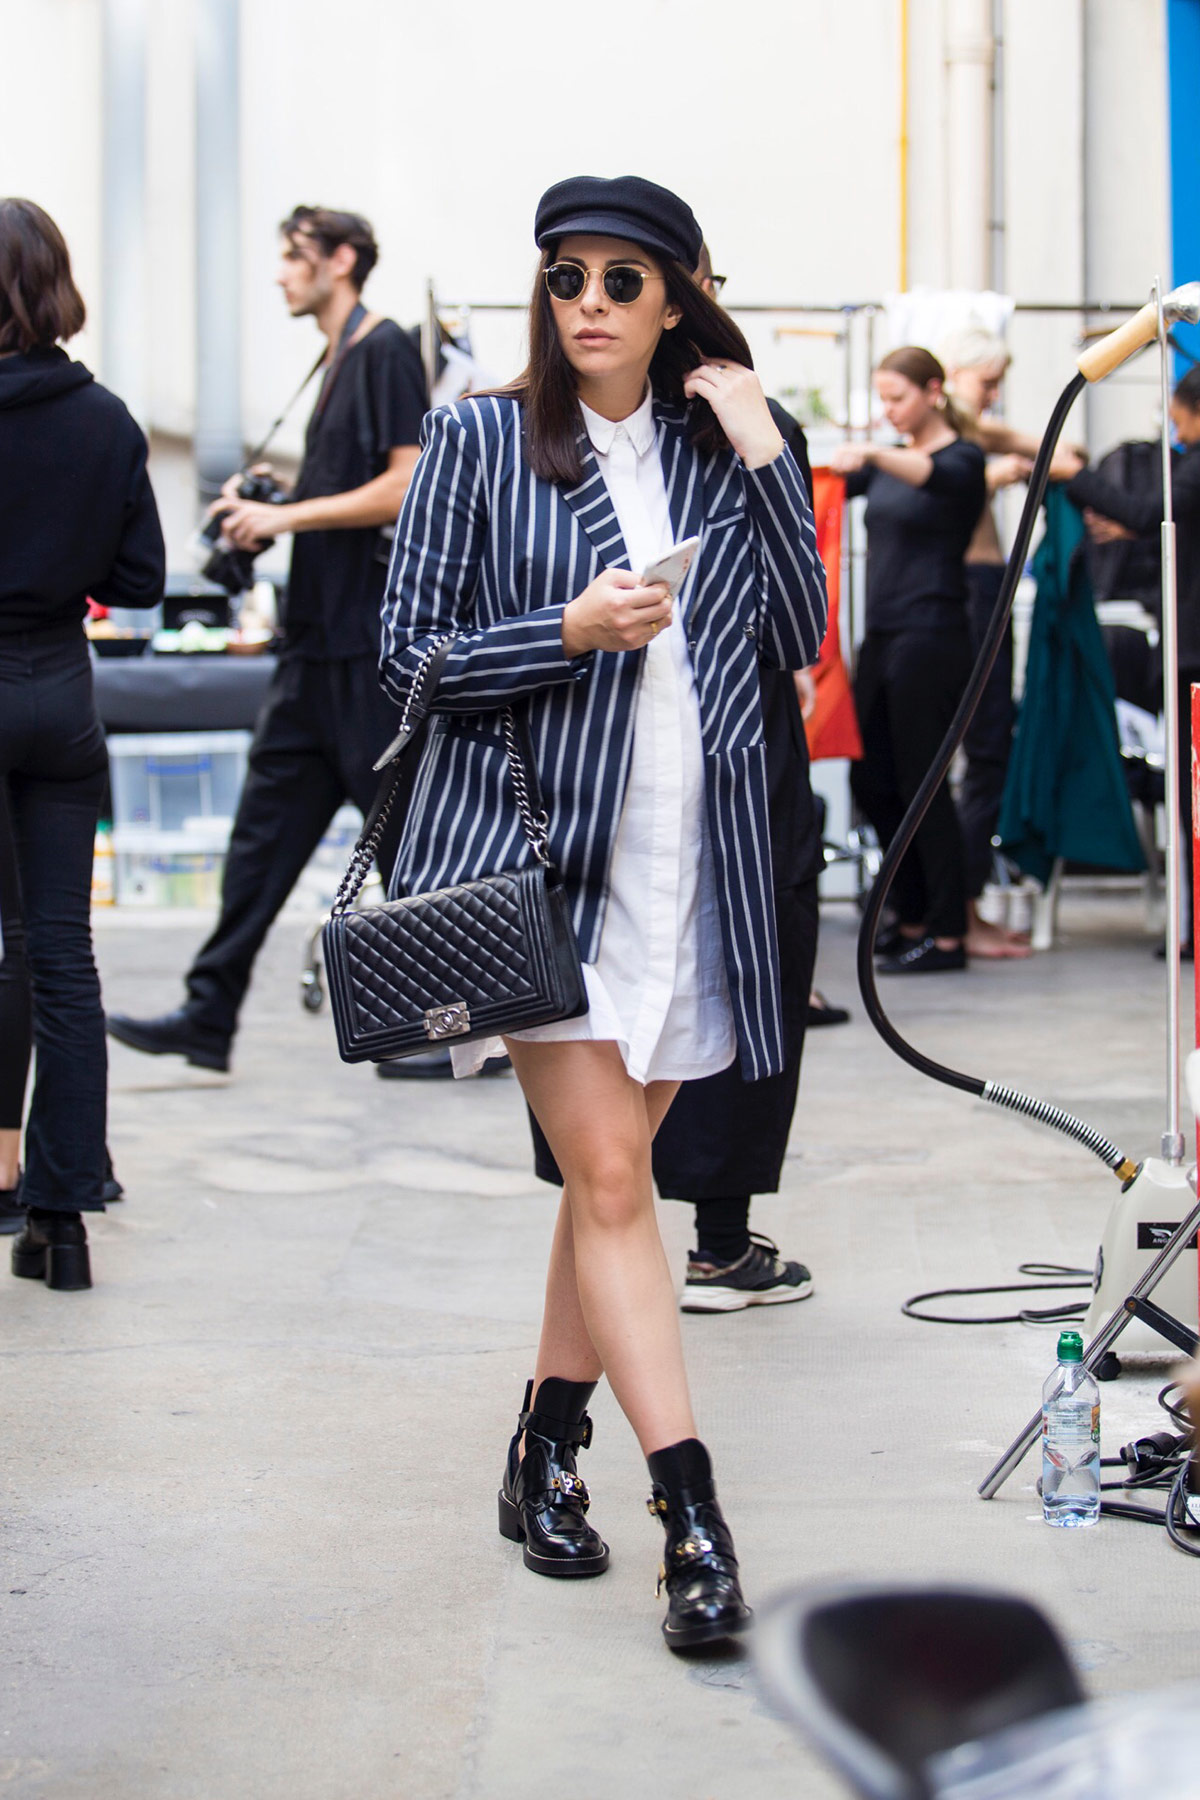 Stella Asteria at Paris Fashion Week wearing deconstructed blazer and baker boy hat